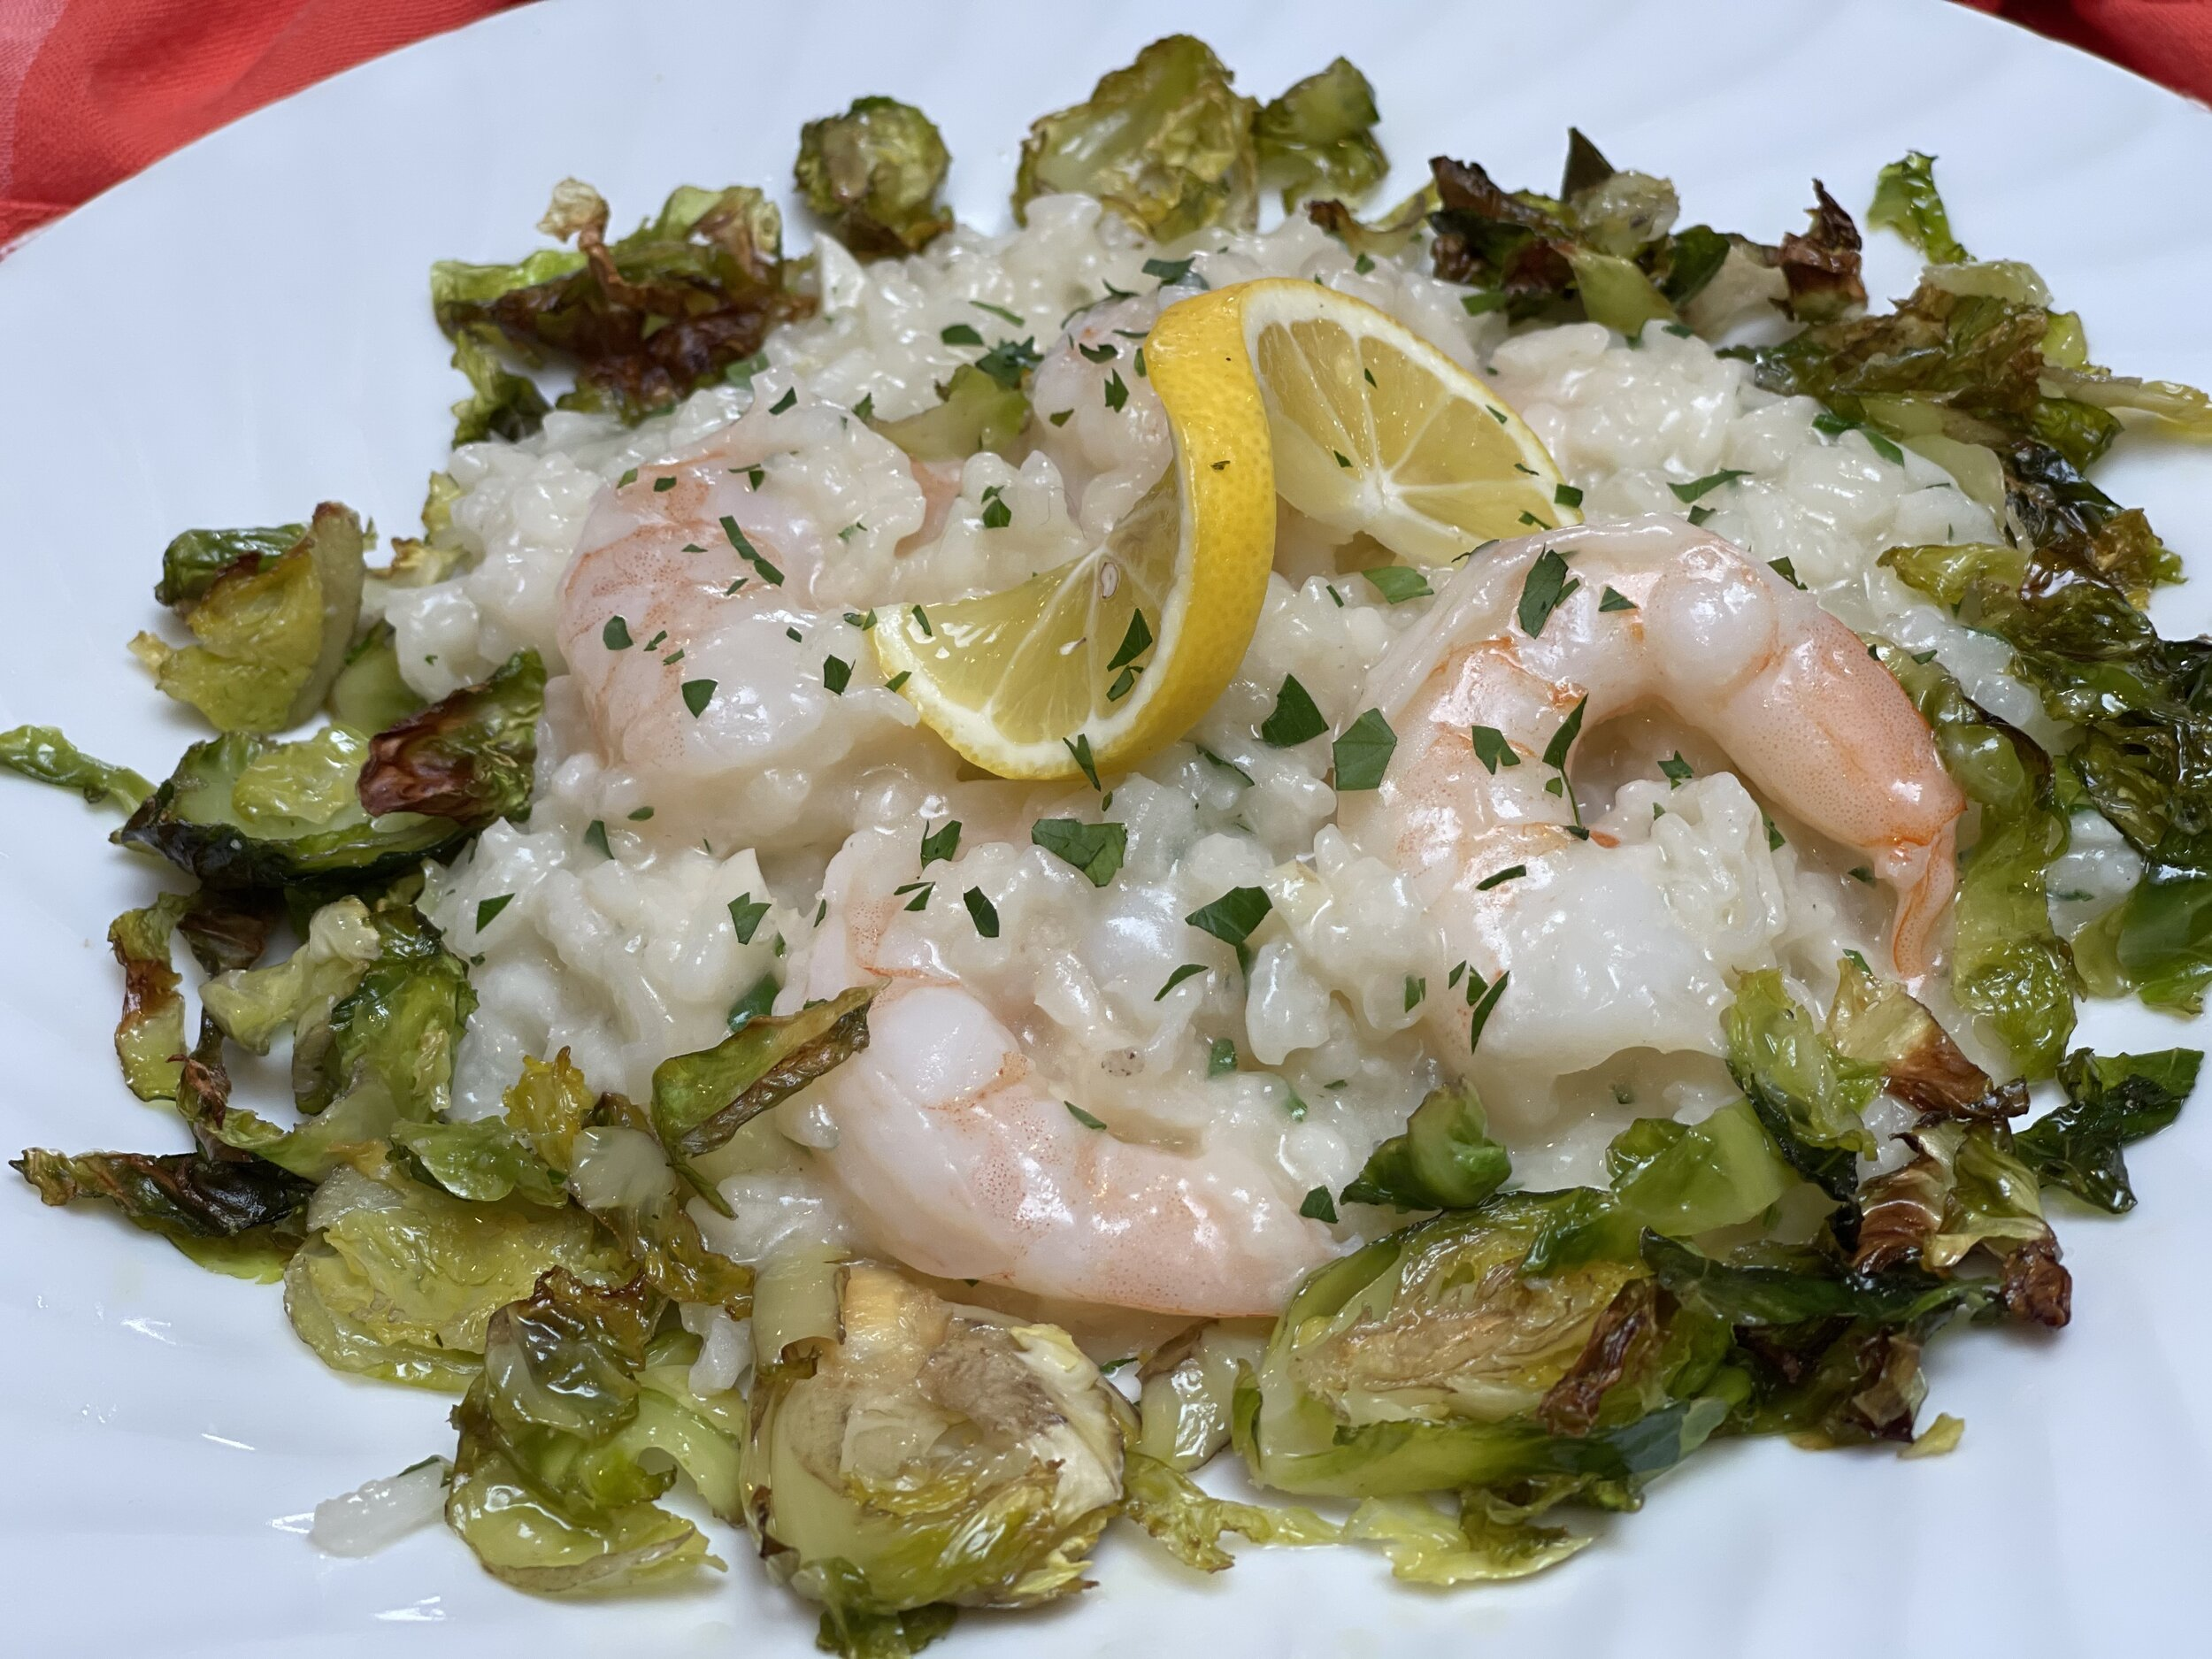 Serving Prawn Risotto with a side of roasted Brussels sprouts.